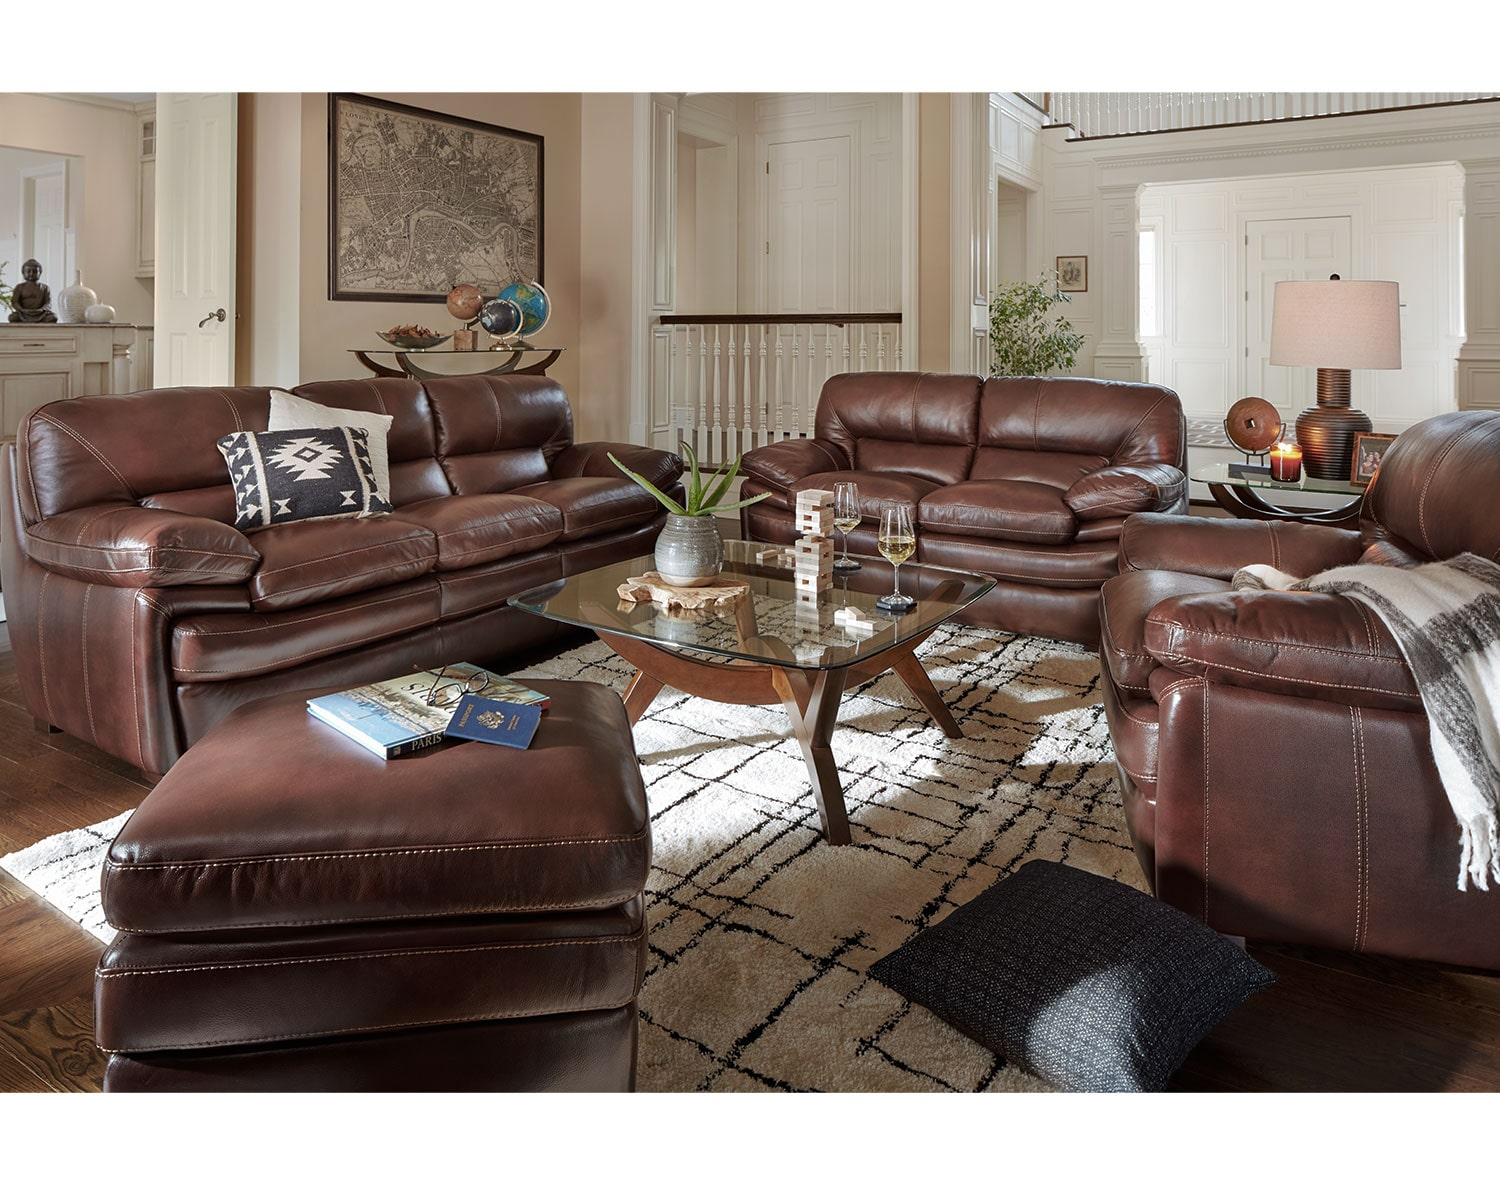 The Peyton Chestnut Living Room Collection